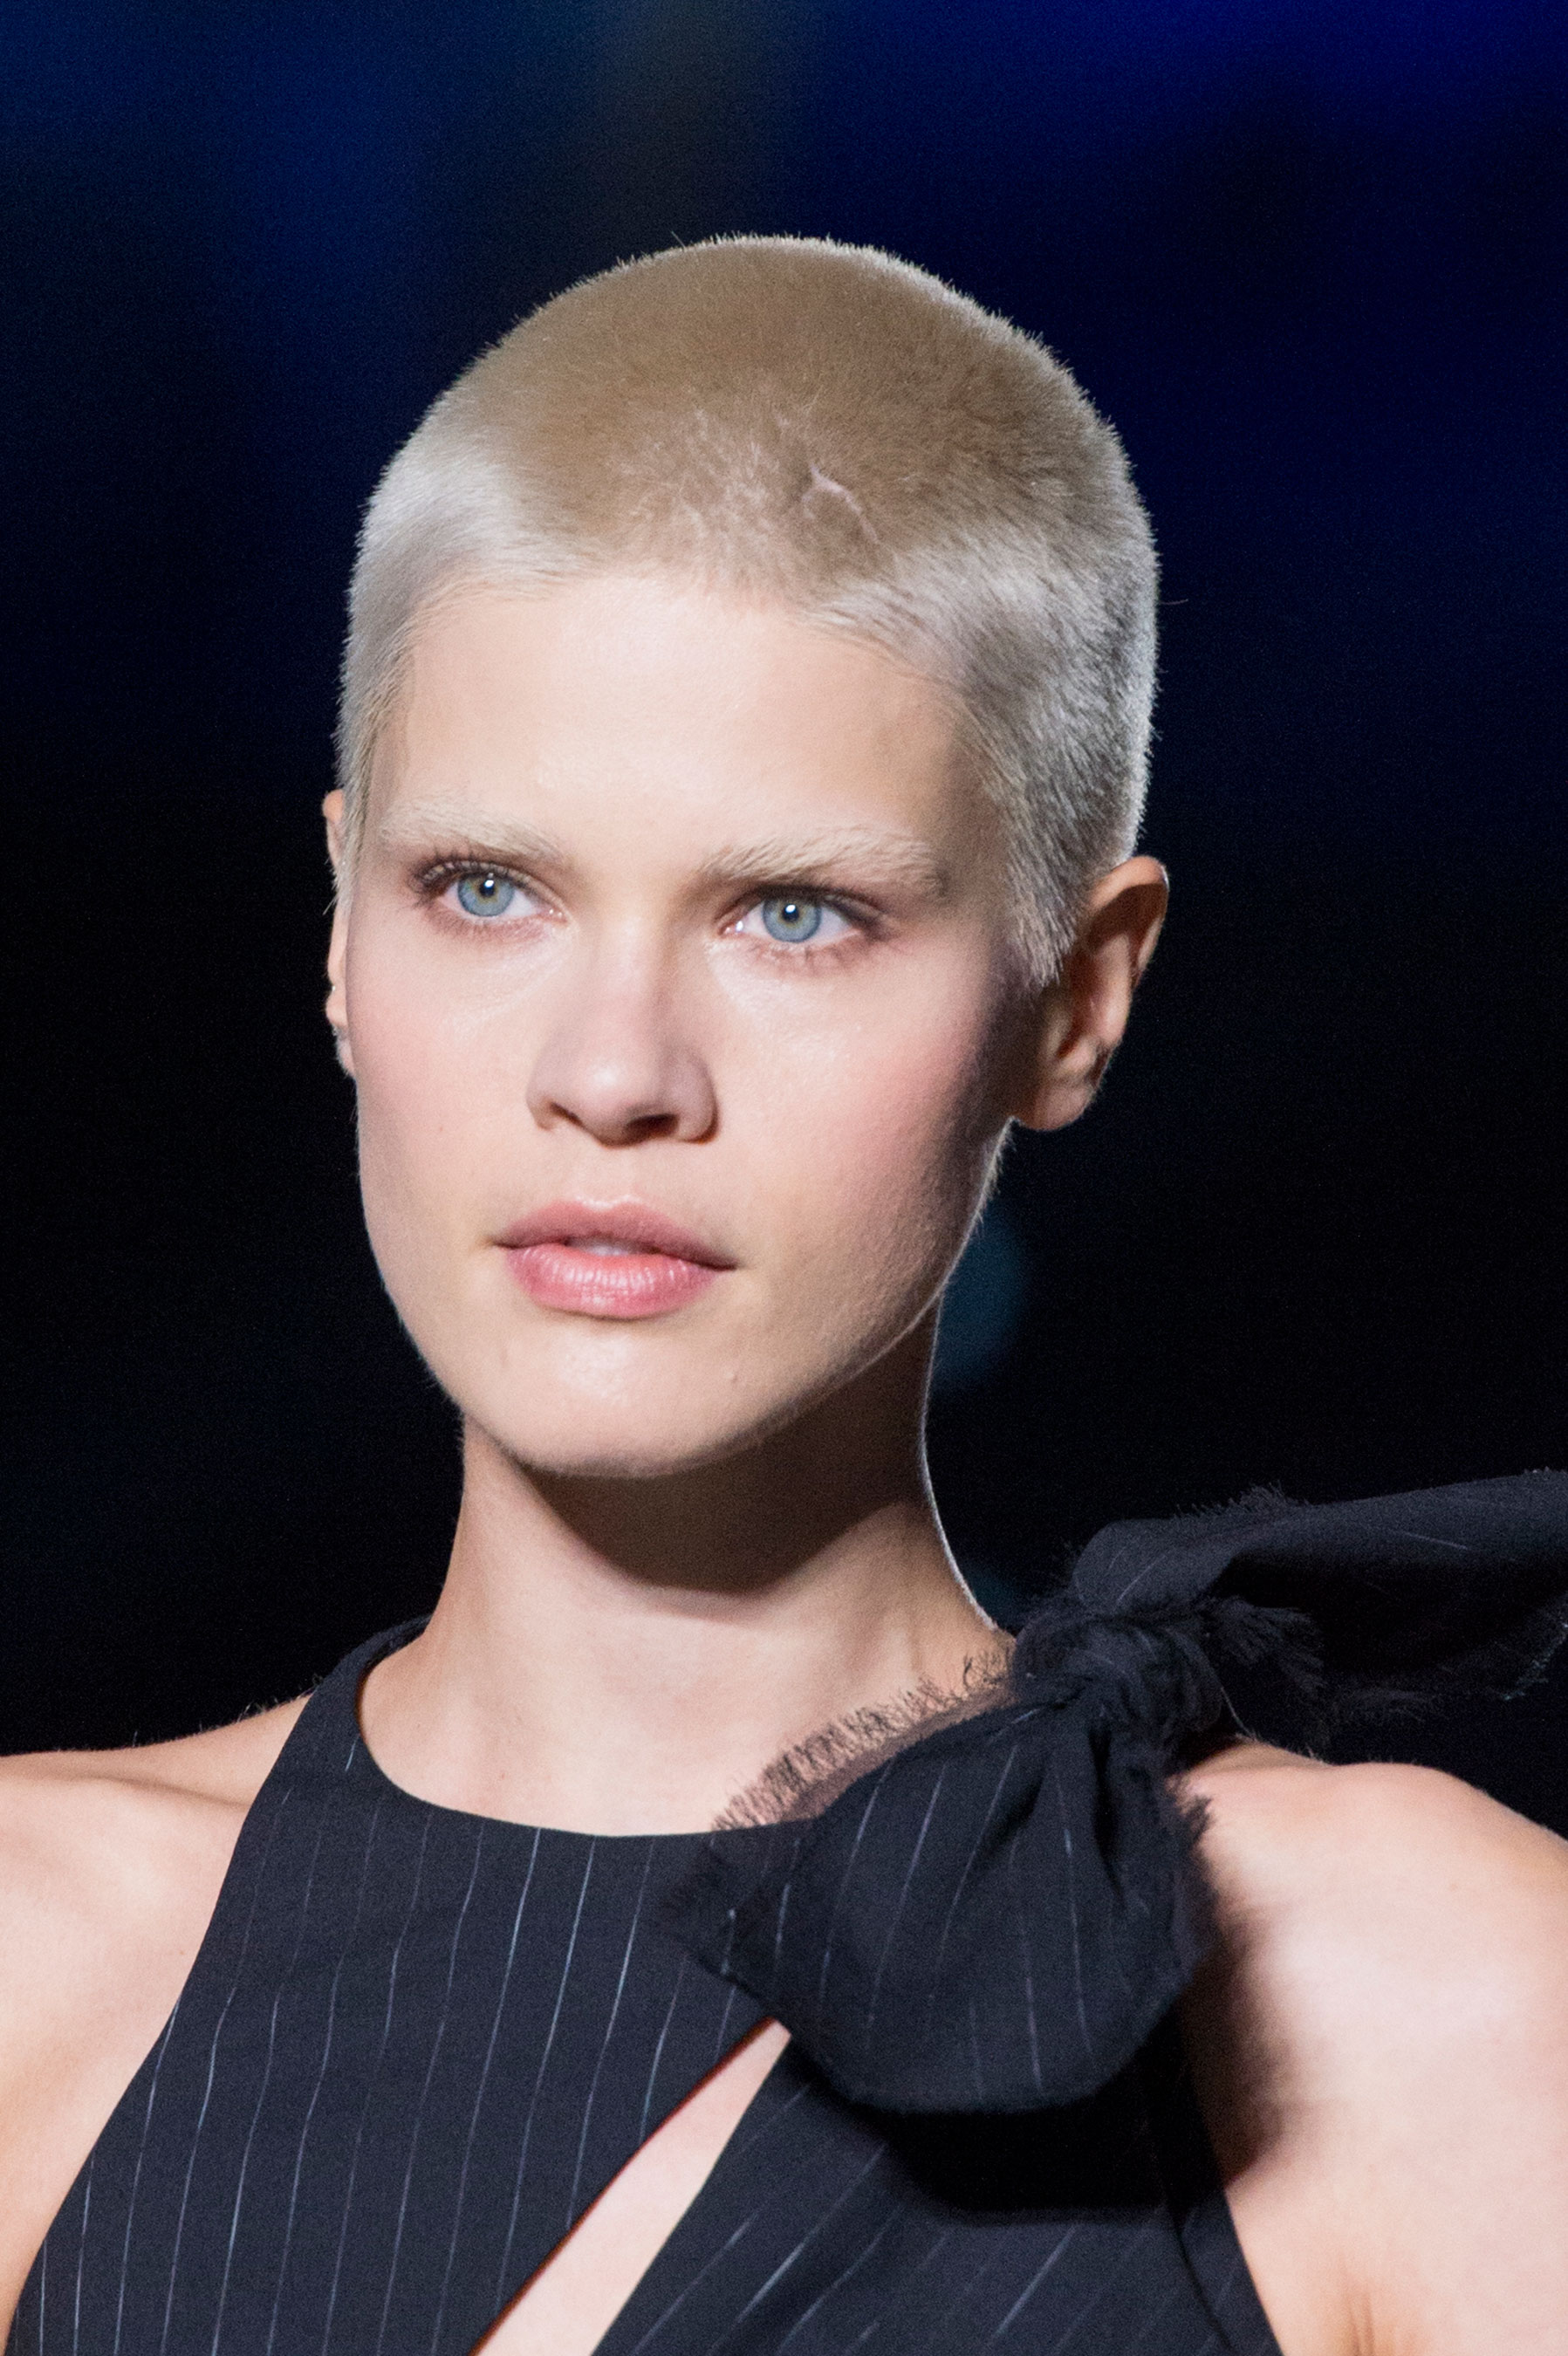 versace-runway-beauty-spring-2016-fashion-show-the-impression-011